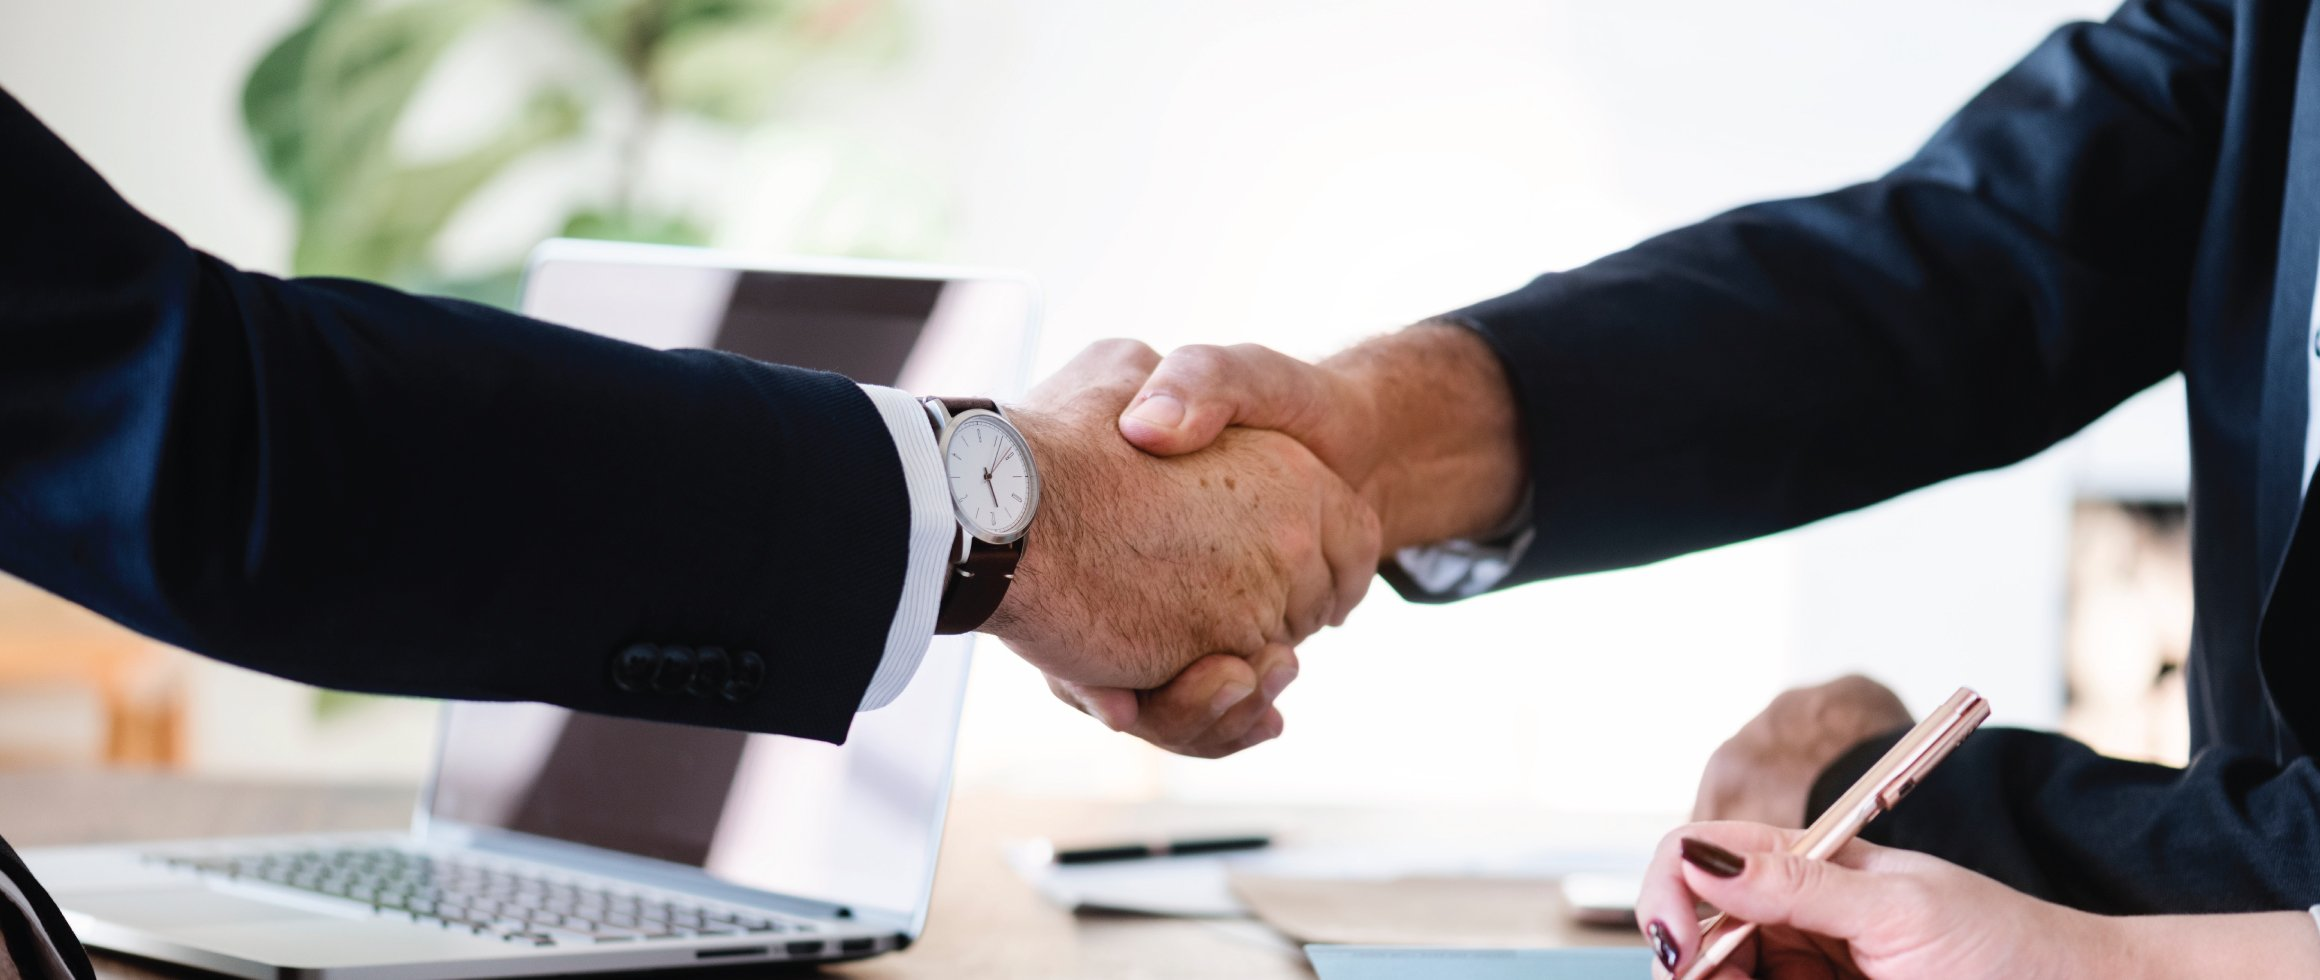 3 ways to discover your opponent through a handshake.